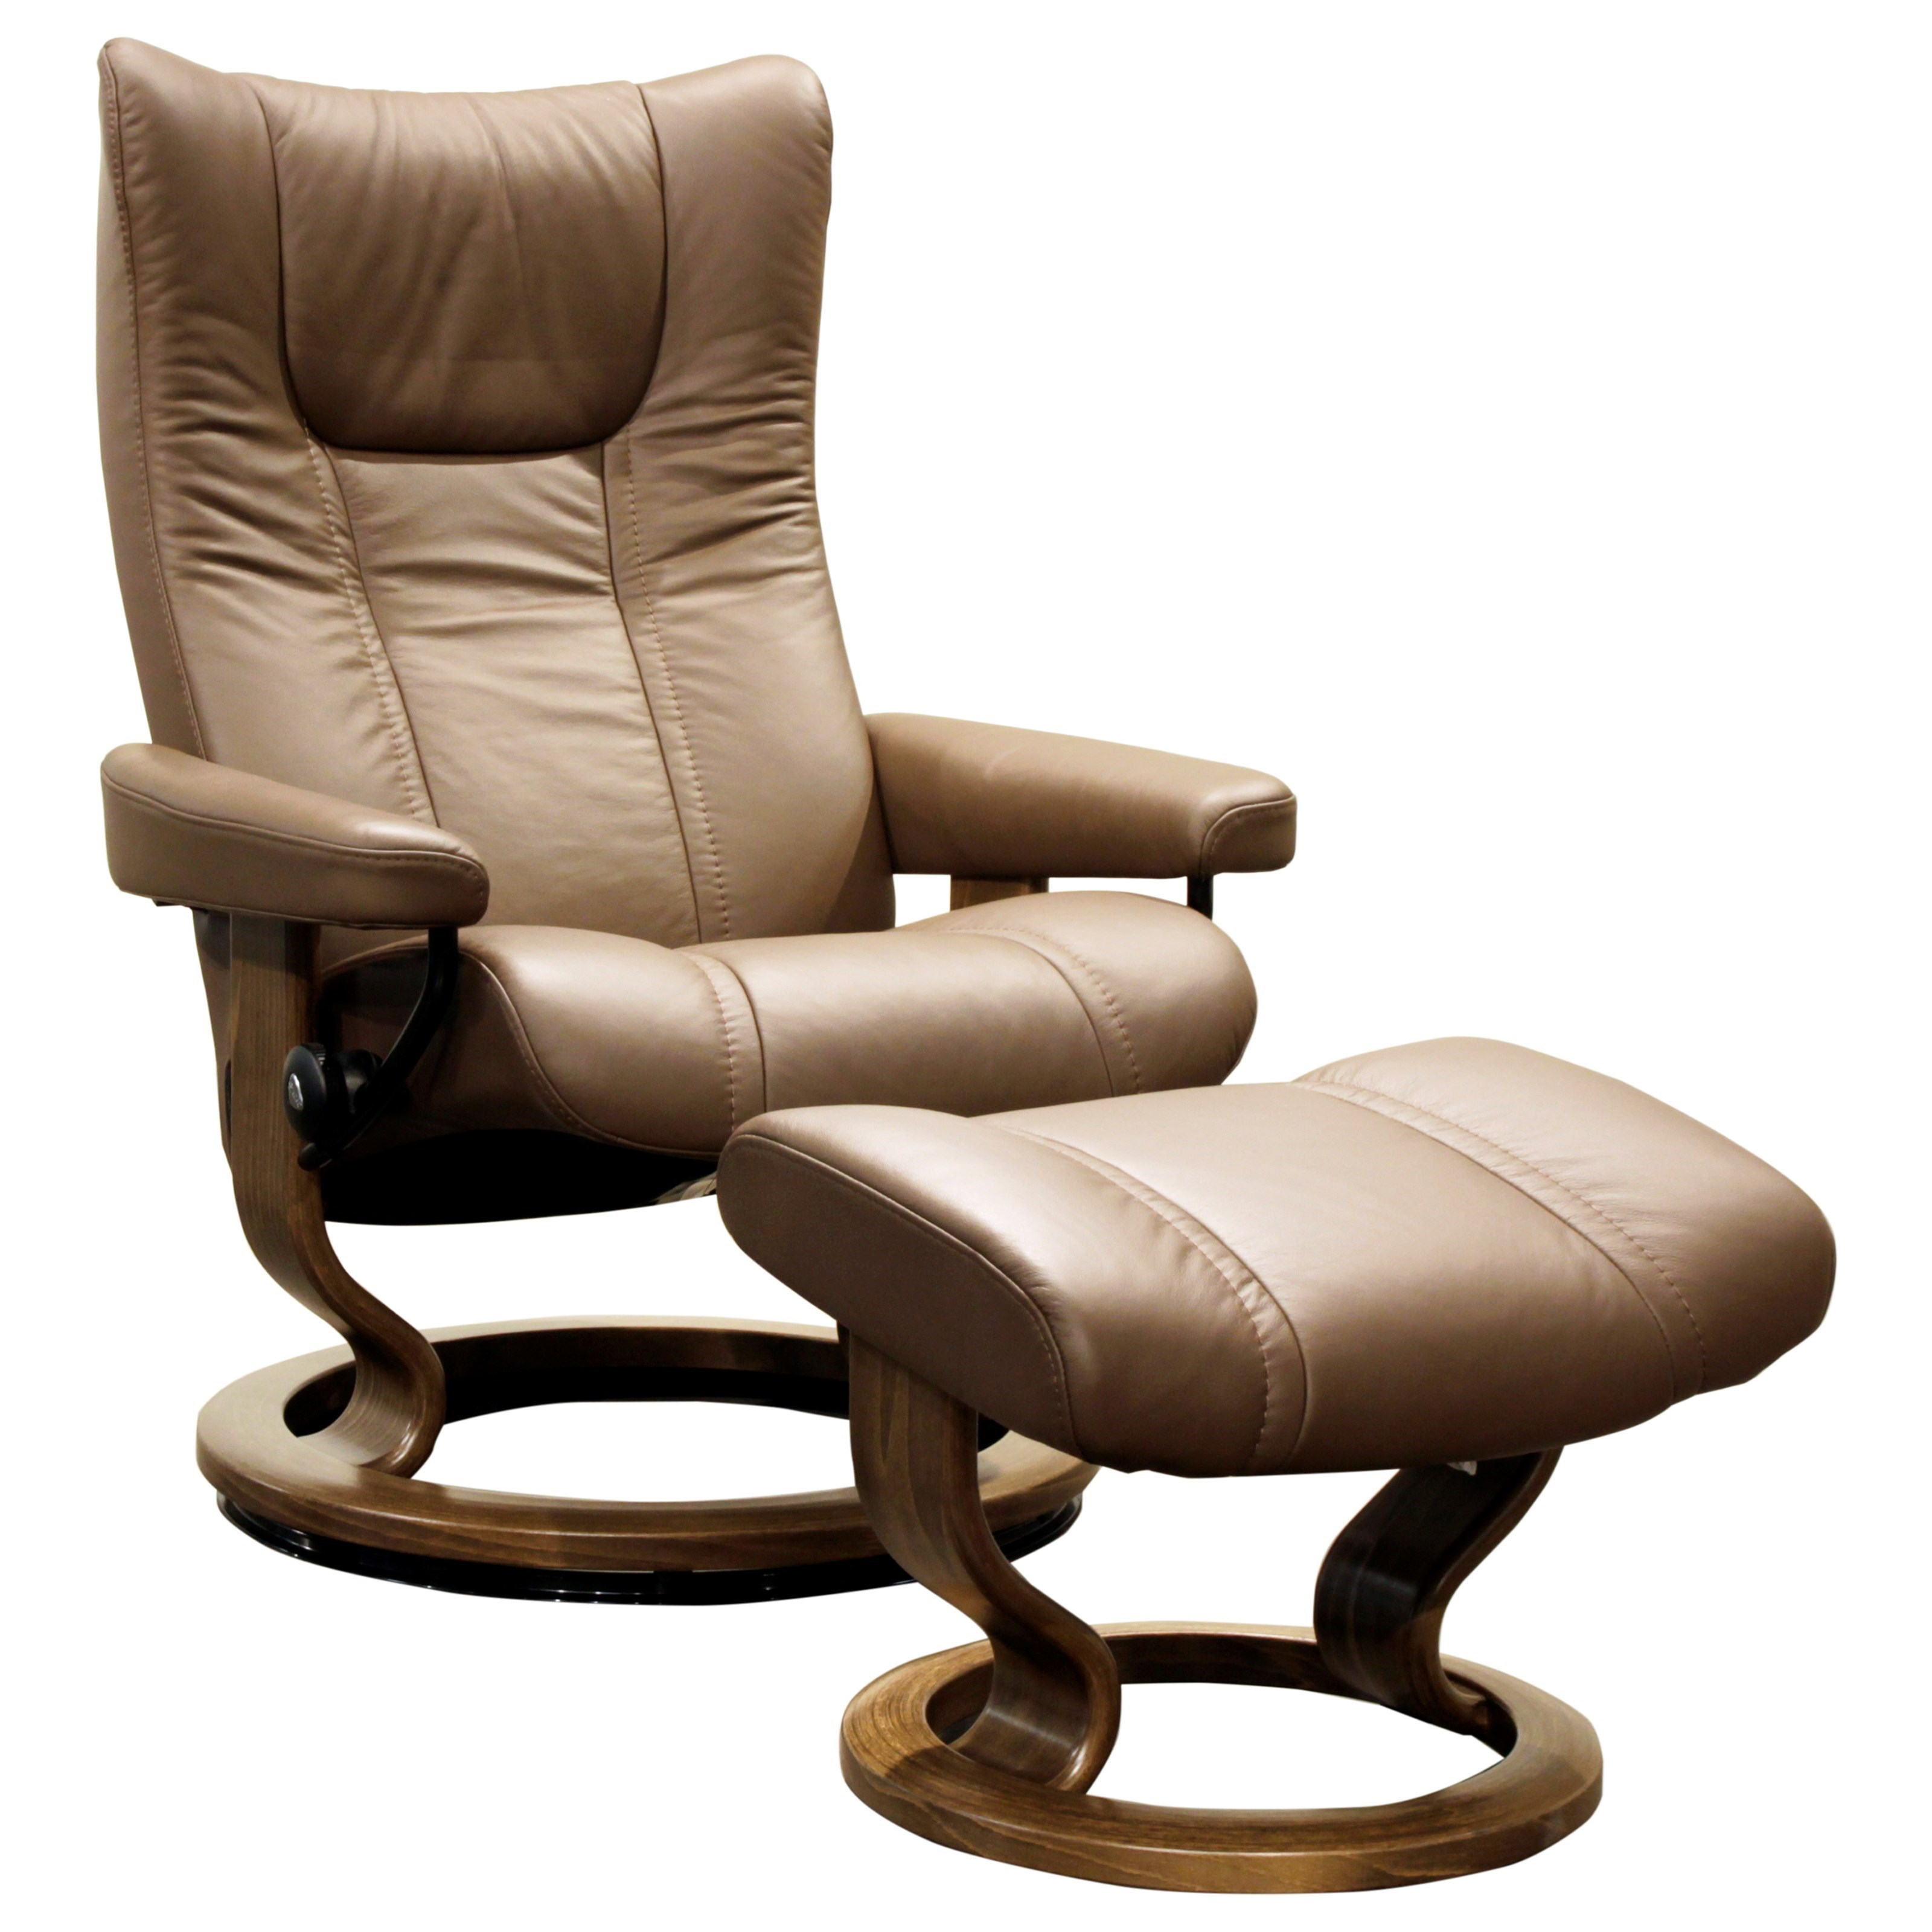 Wing Medium Chair & Ottoman with Classic Base by Stressless at Virginia Furniture Market